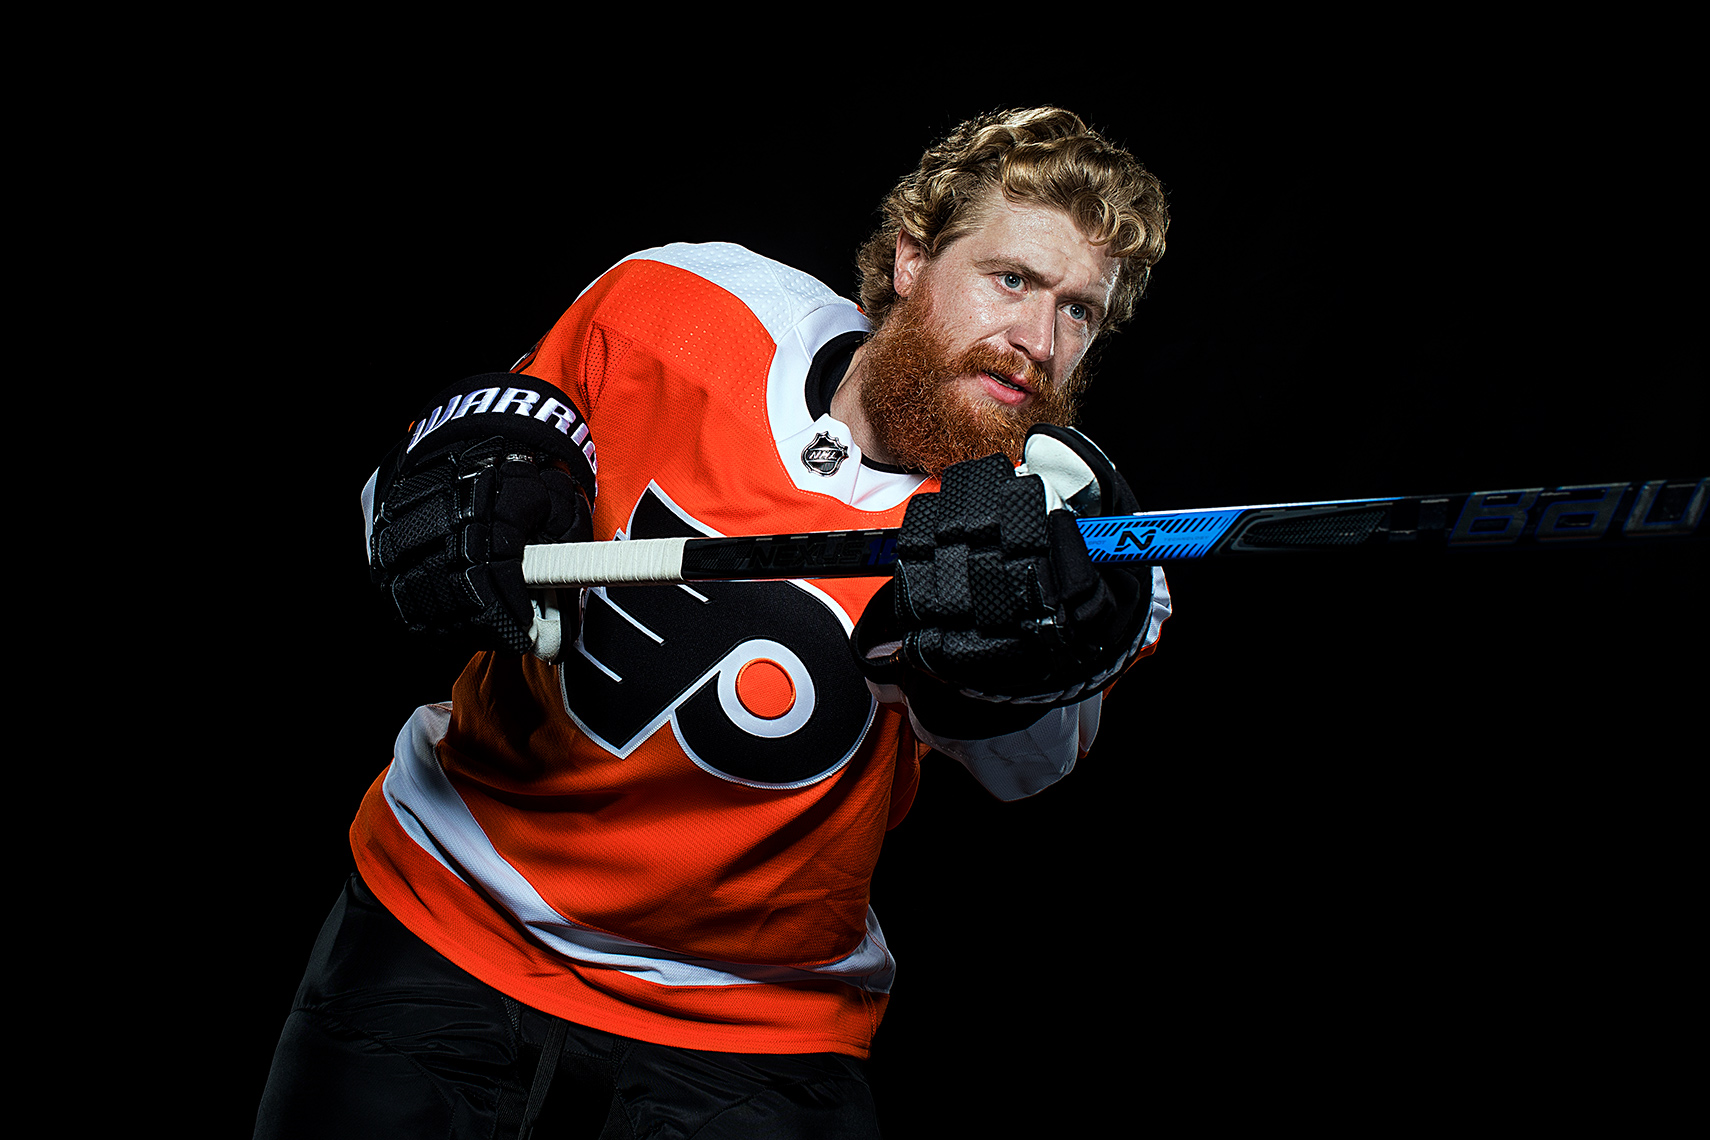 Philadelphia Photographer STEVE BOYLE - Philadelphia Flyers Hockey